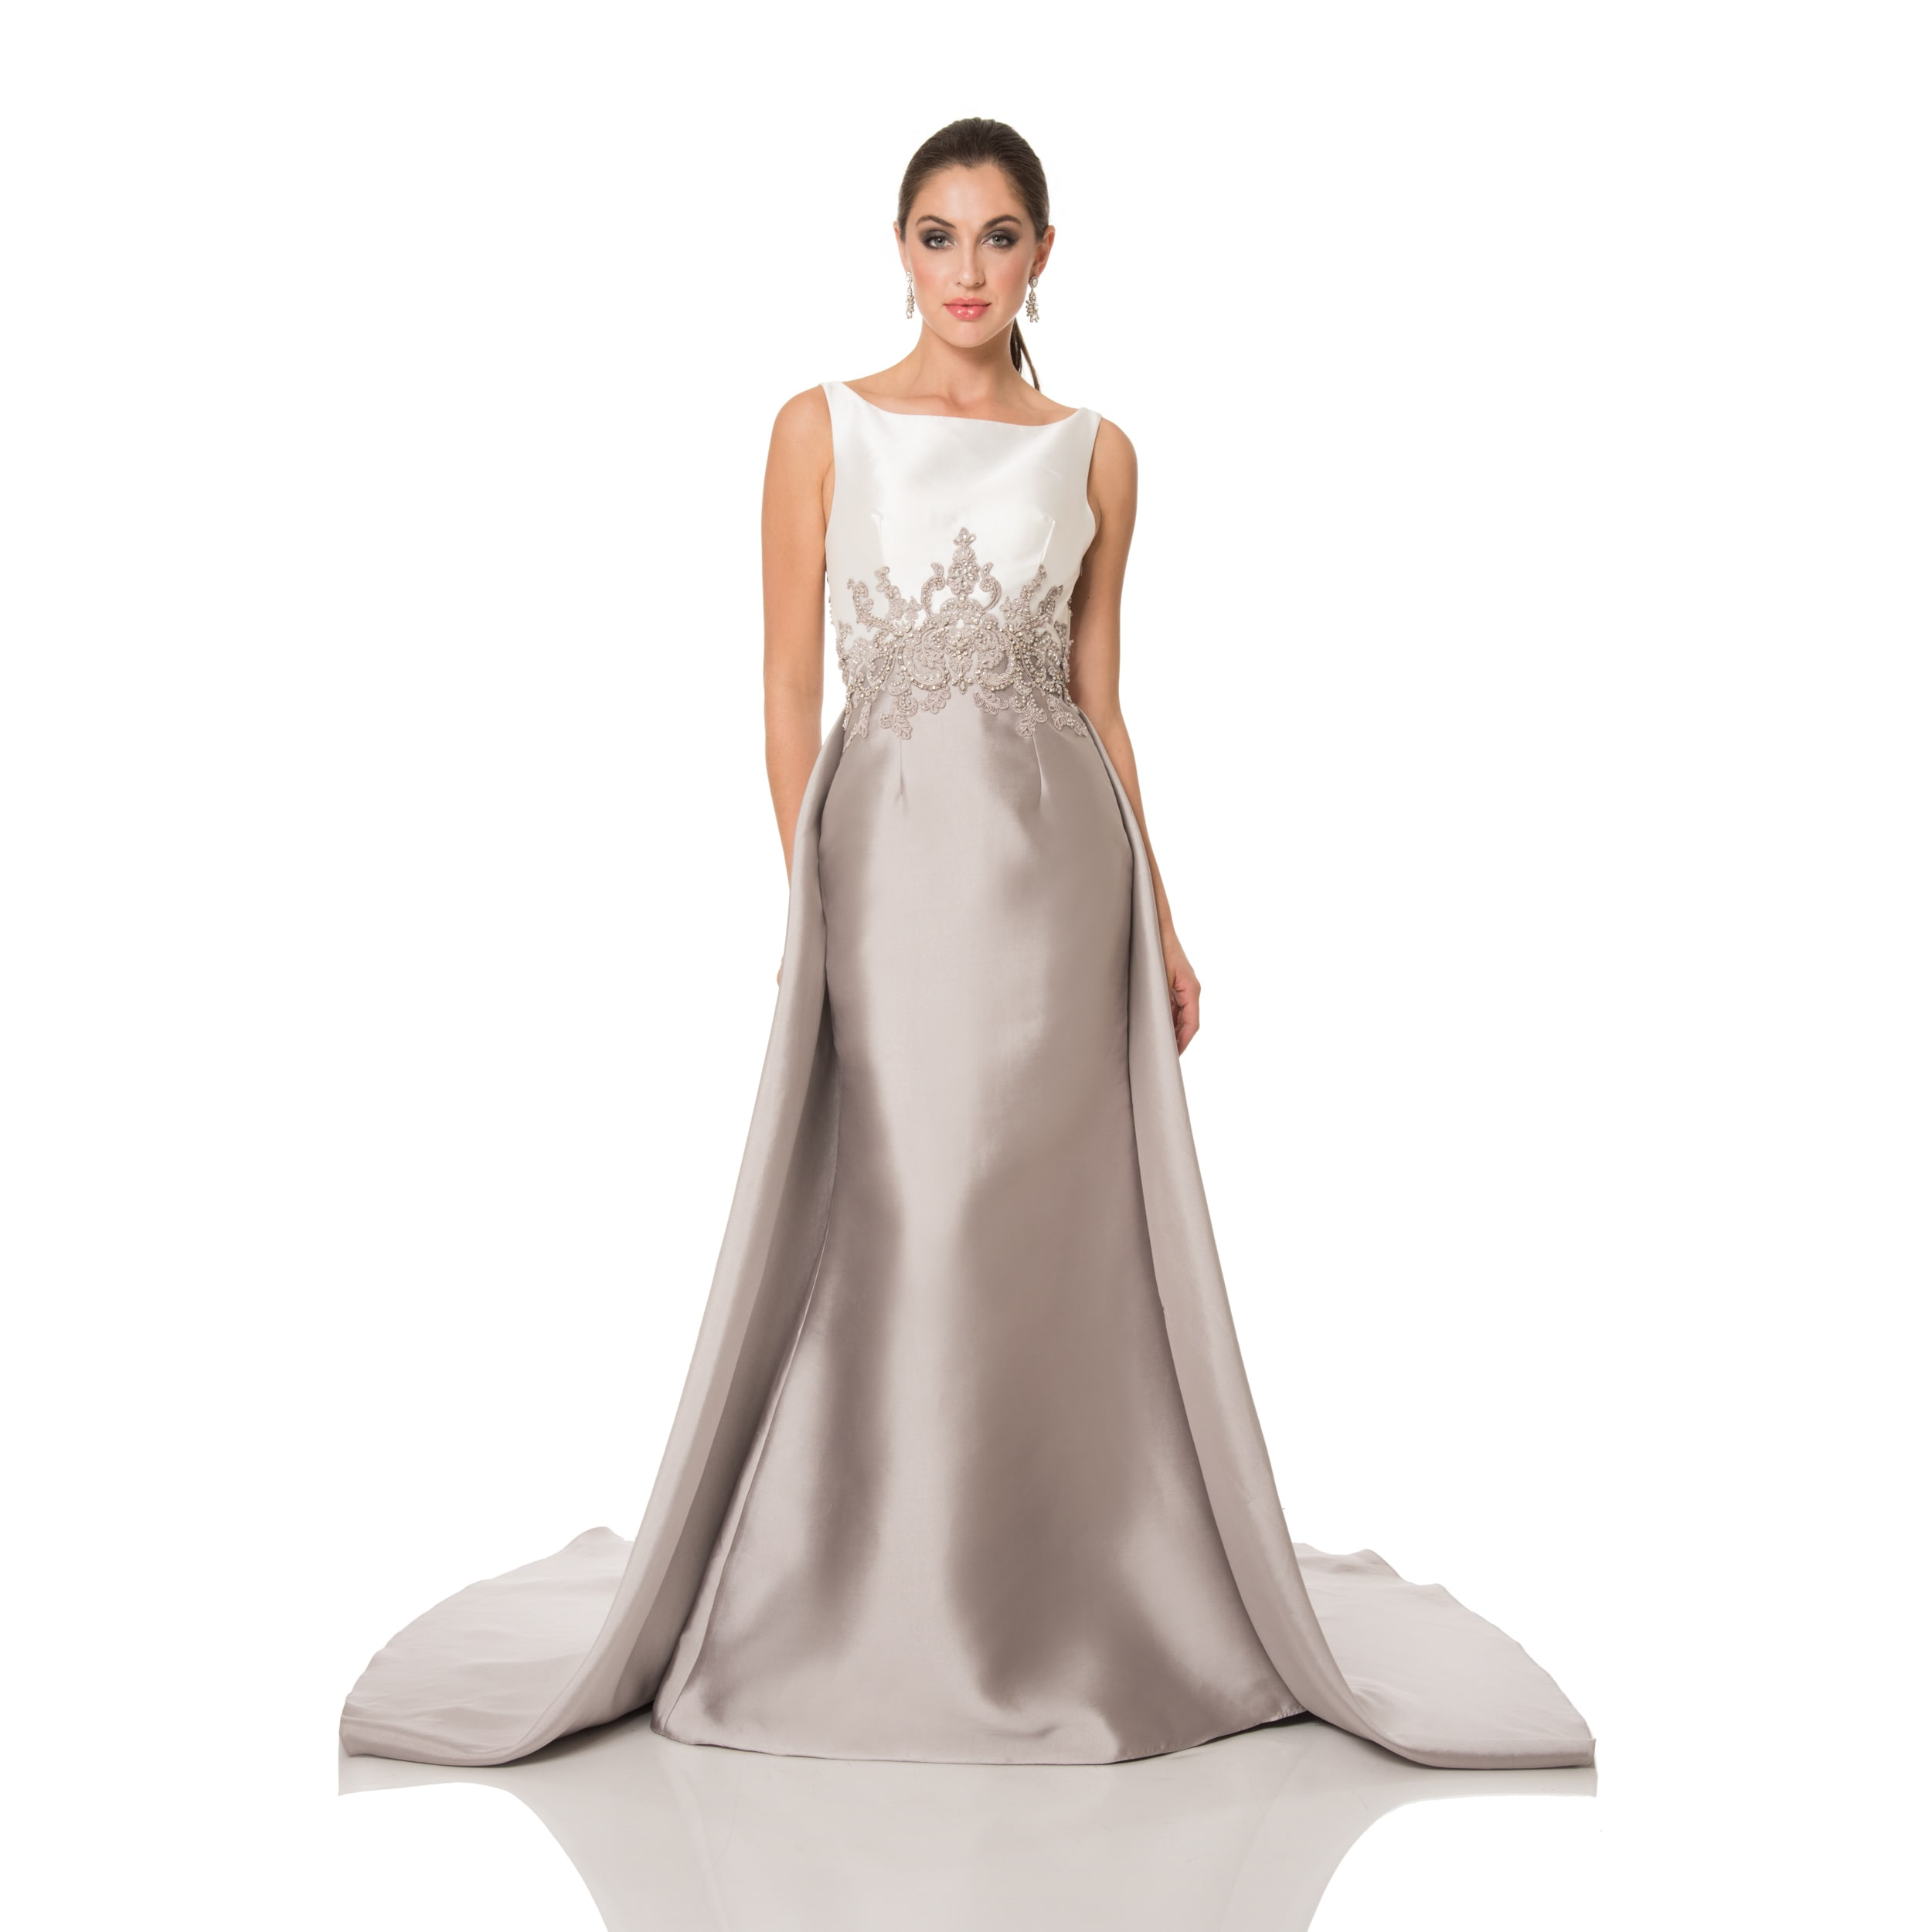 Shop Tan/ White Two-Tone Embellished Evening Gown - Free Shipping ...